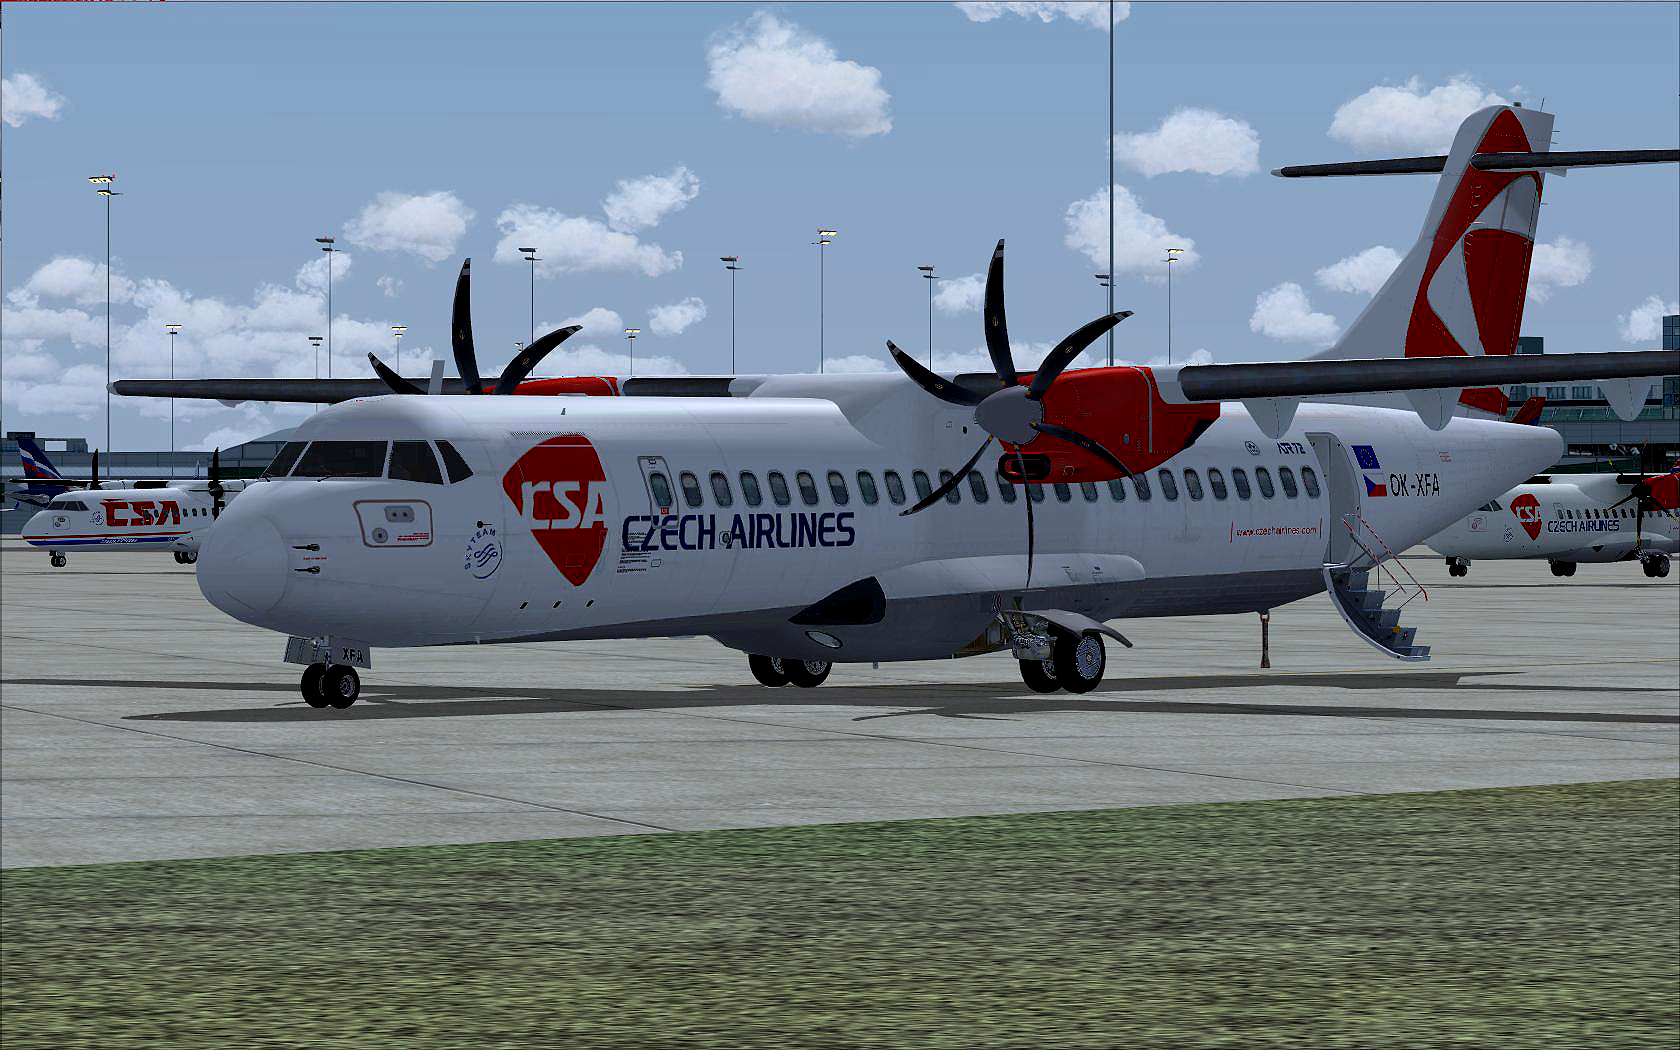 flight simulator no download free online with Atr 42 500 Fsx Download Store on Atr 42 500 Fsx Download Store together with Image further Descargar Flight Simulator additionally Crack No Cd  bat Flight Simulator besides How To Crack Clearview Rc Flight Simulator.